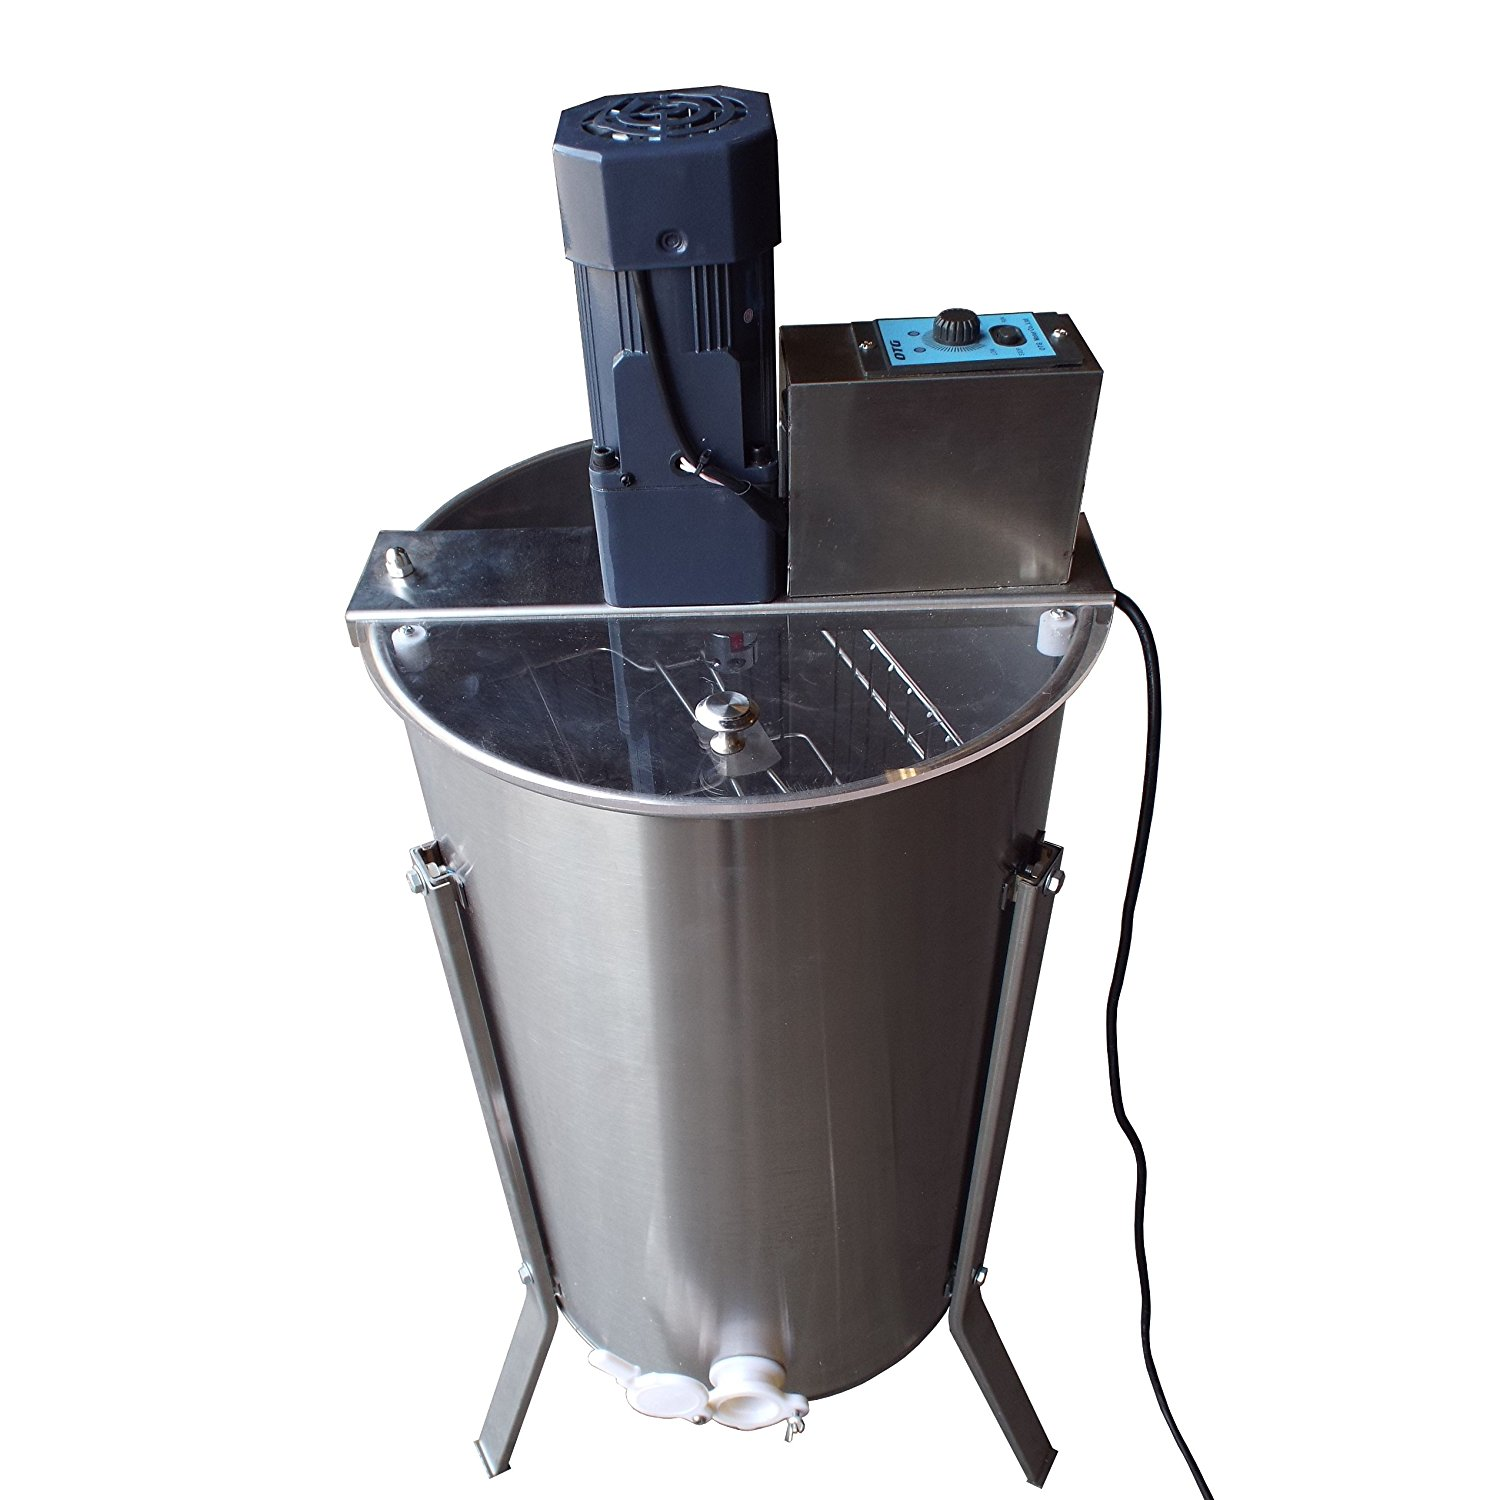 Hardin Royal 2 Electric Two Frame Stainless Steel Honey Extractor